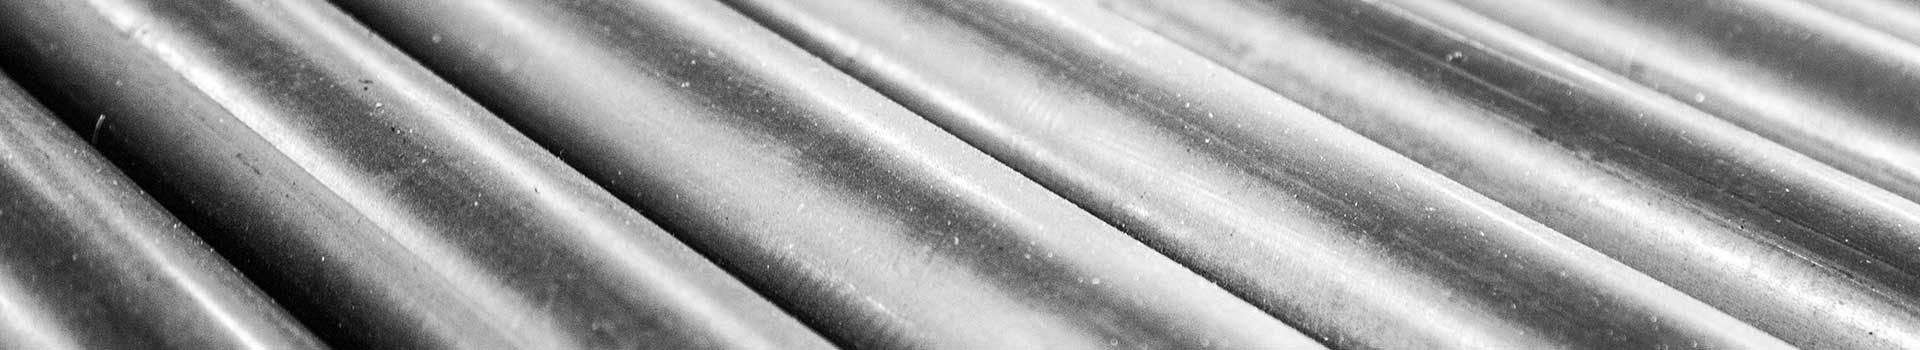 Carbon & Alloy Steel Supplier